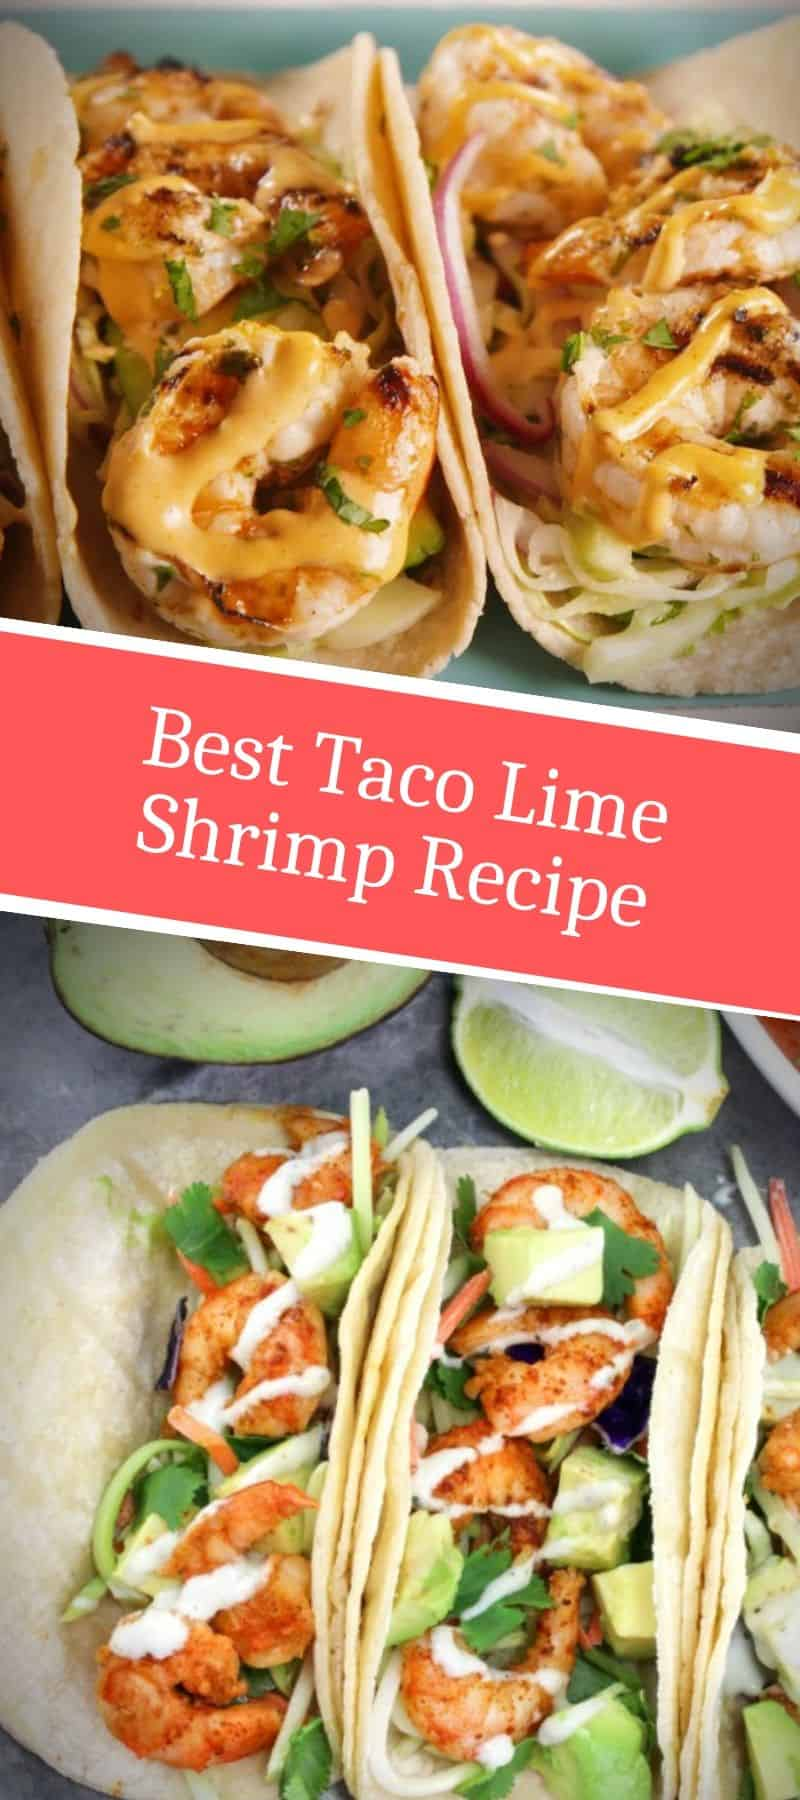 Best Taco Lime Shrimp Recipe 3